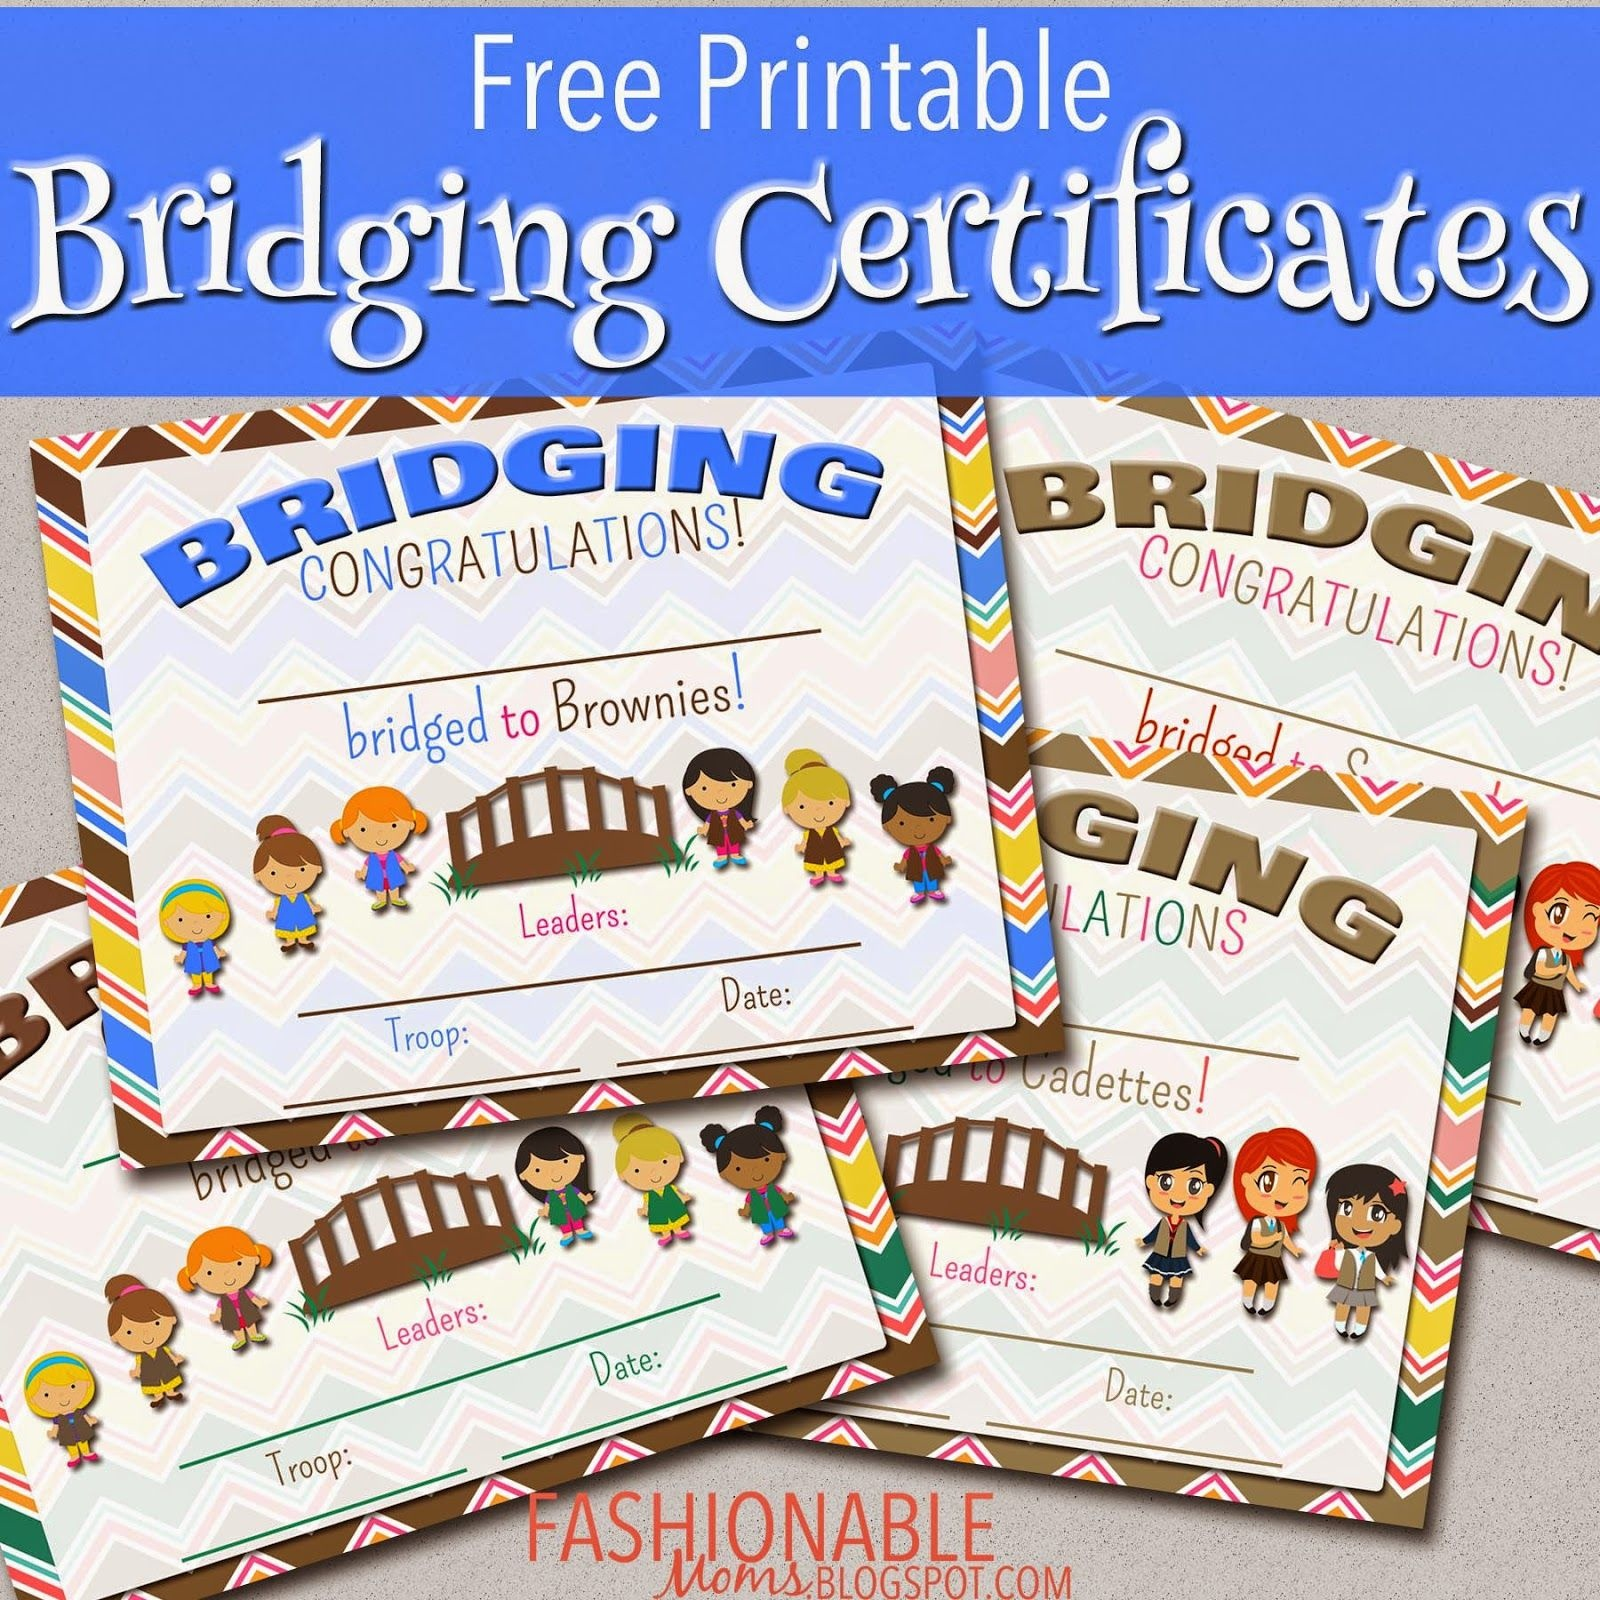 Free Printable Bridging Certificates | Girl Scouts | Girl Scout - Free Bridging Certificate Printable